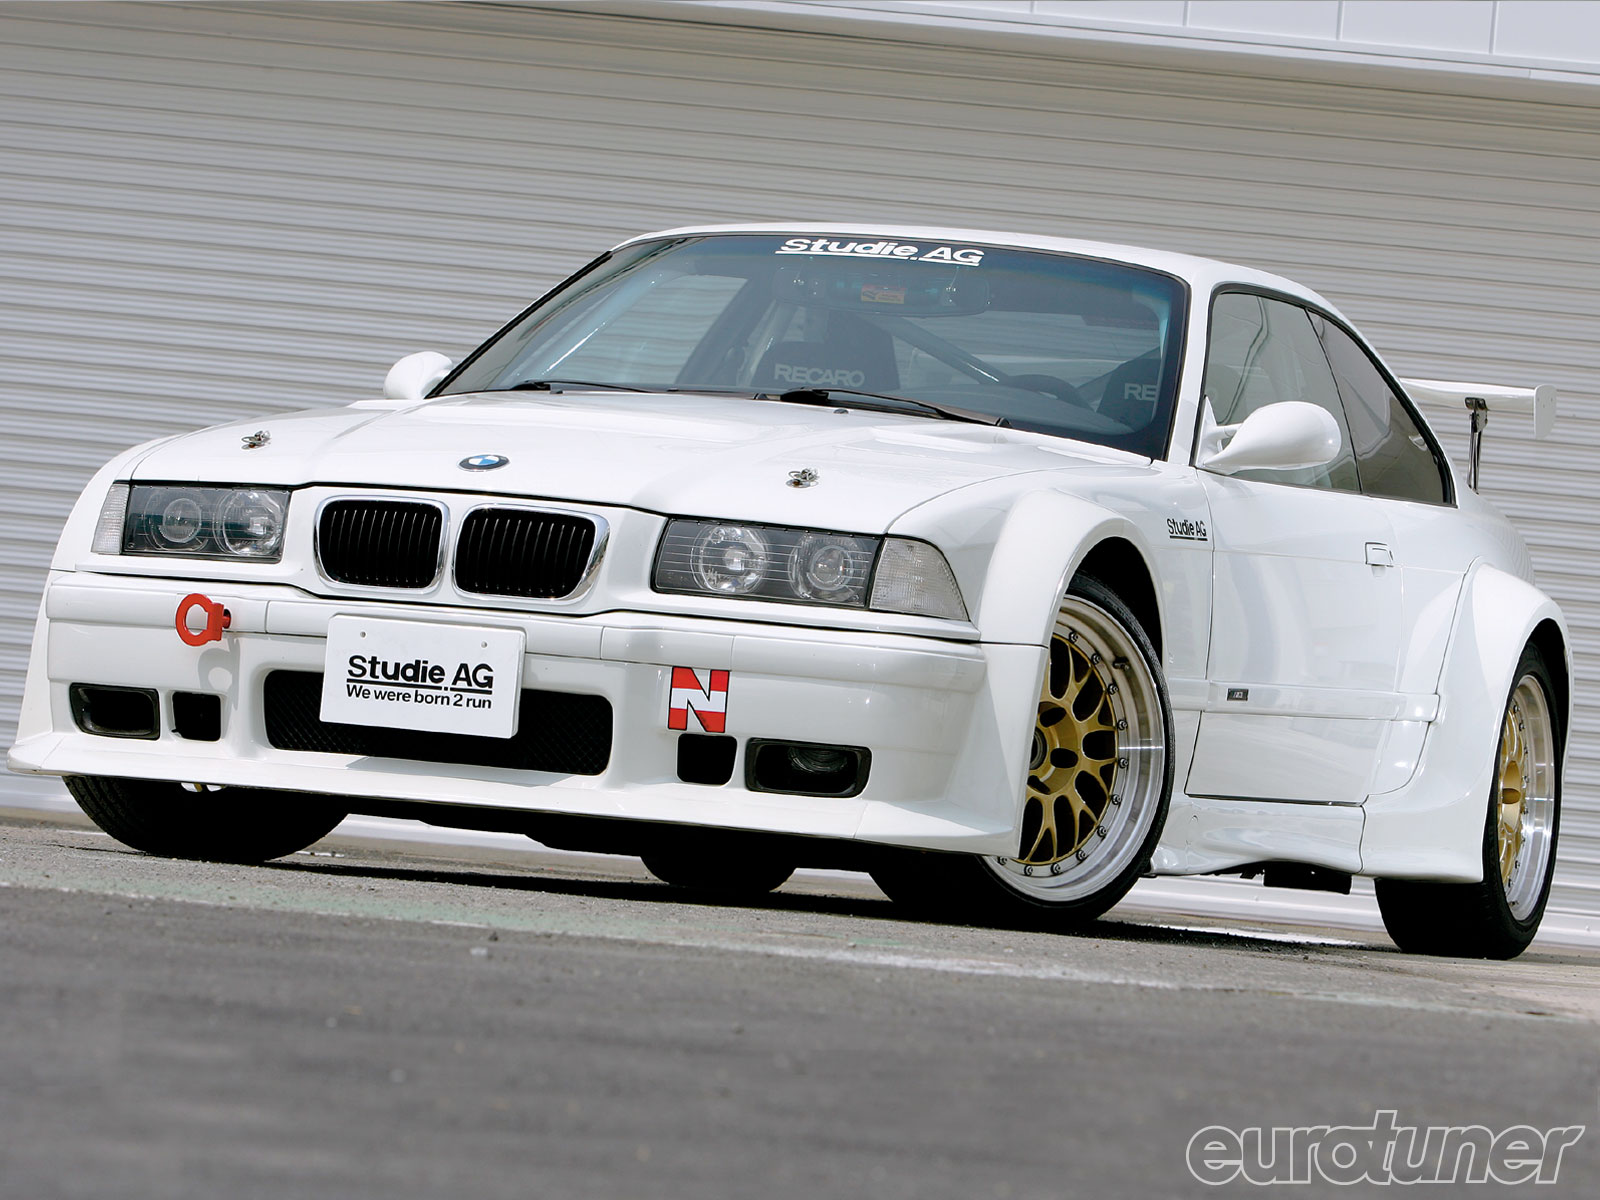 1996 Bmw M3 Gtr Replica 32 Liter S52 Engine Eurotuner Magazine